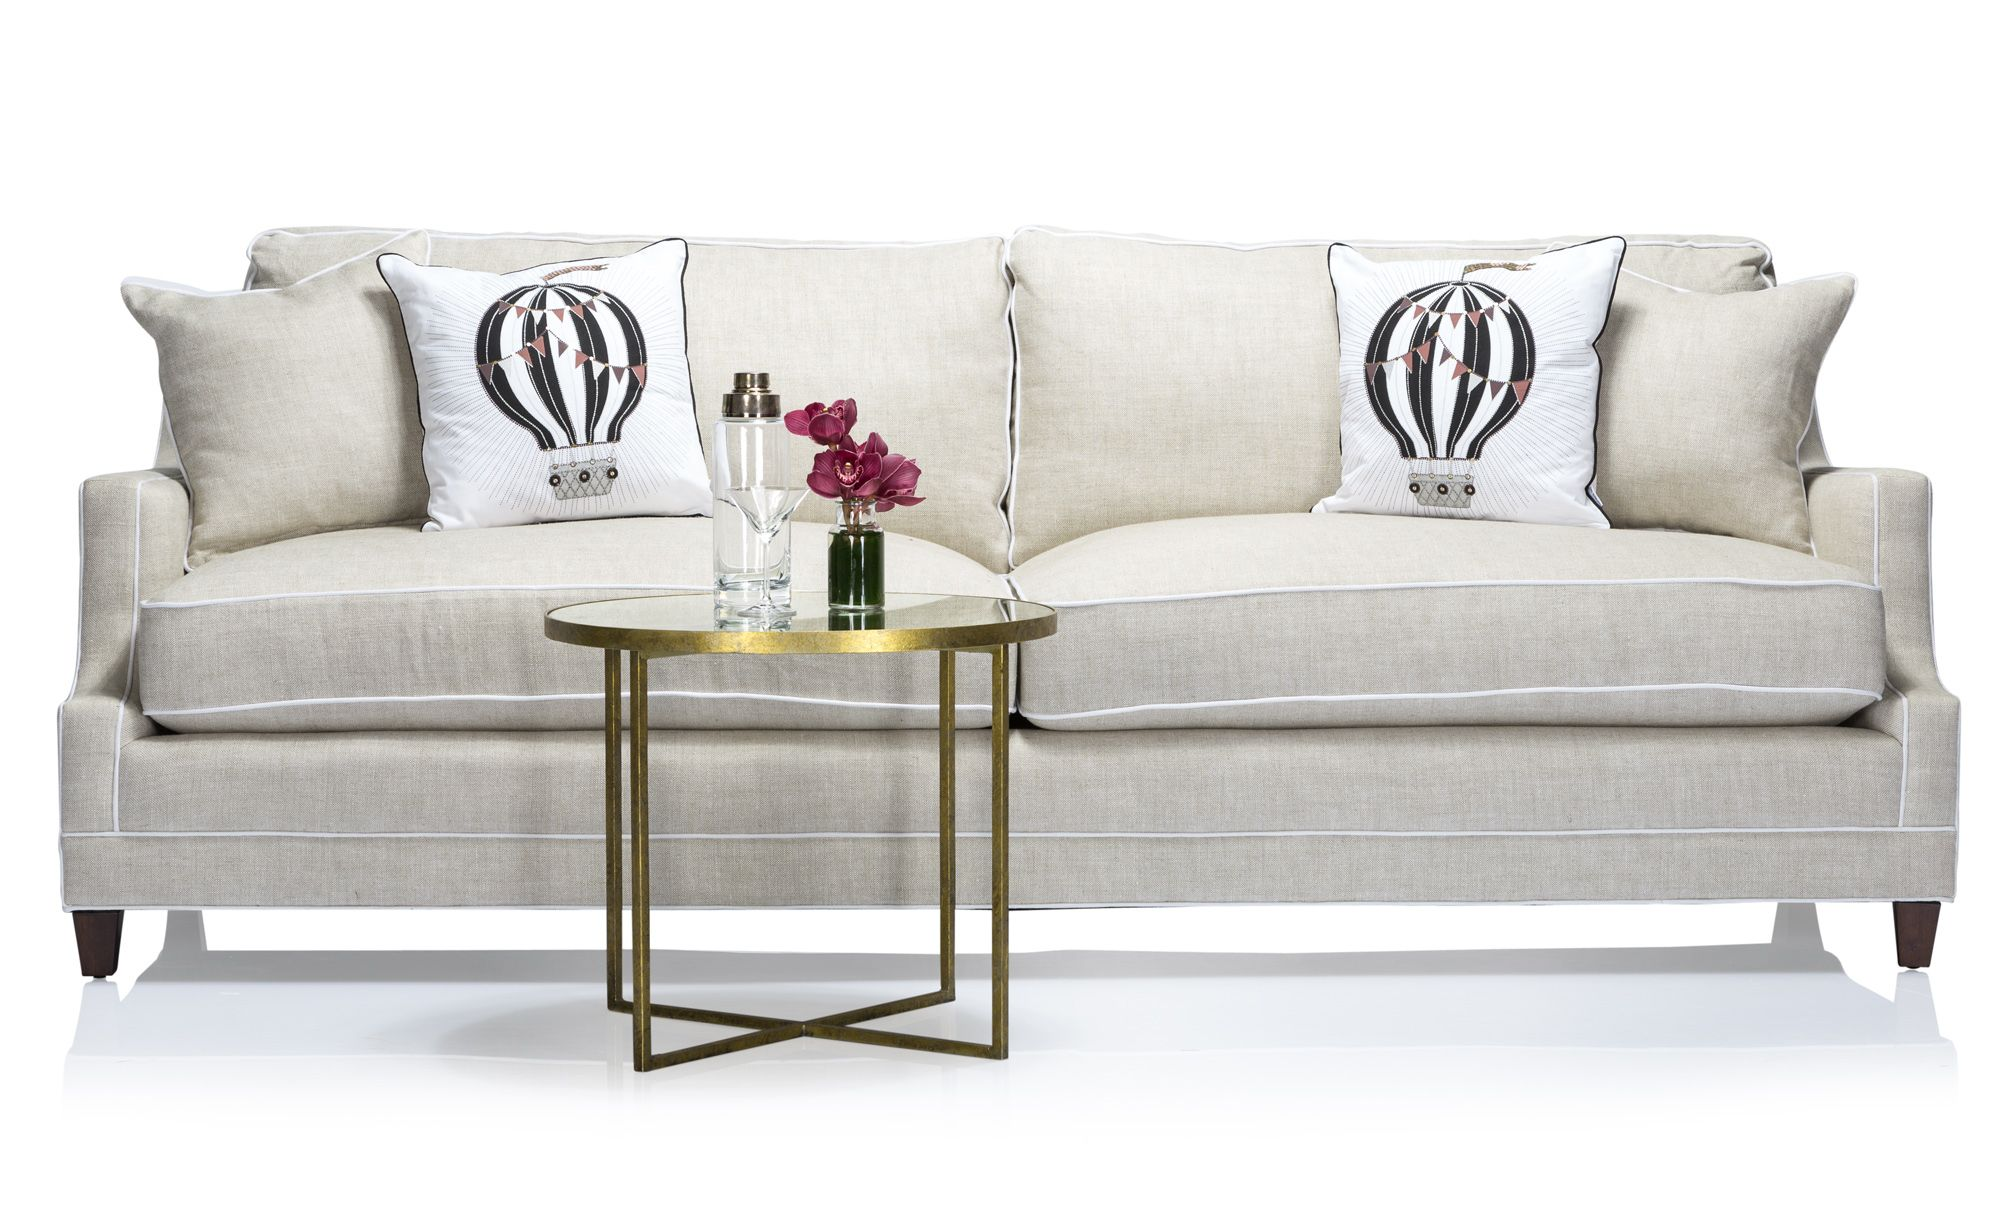 Coco Republic Ashley Sofa | Ideas for the House | Pinterest